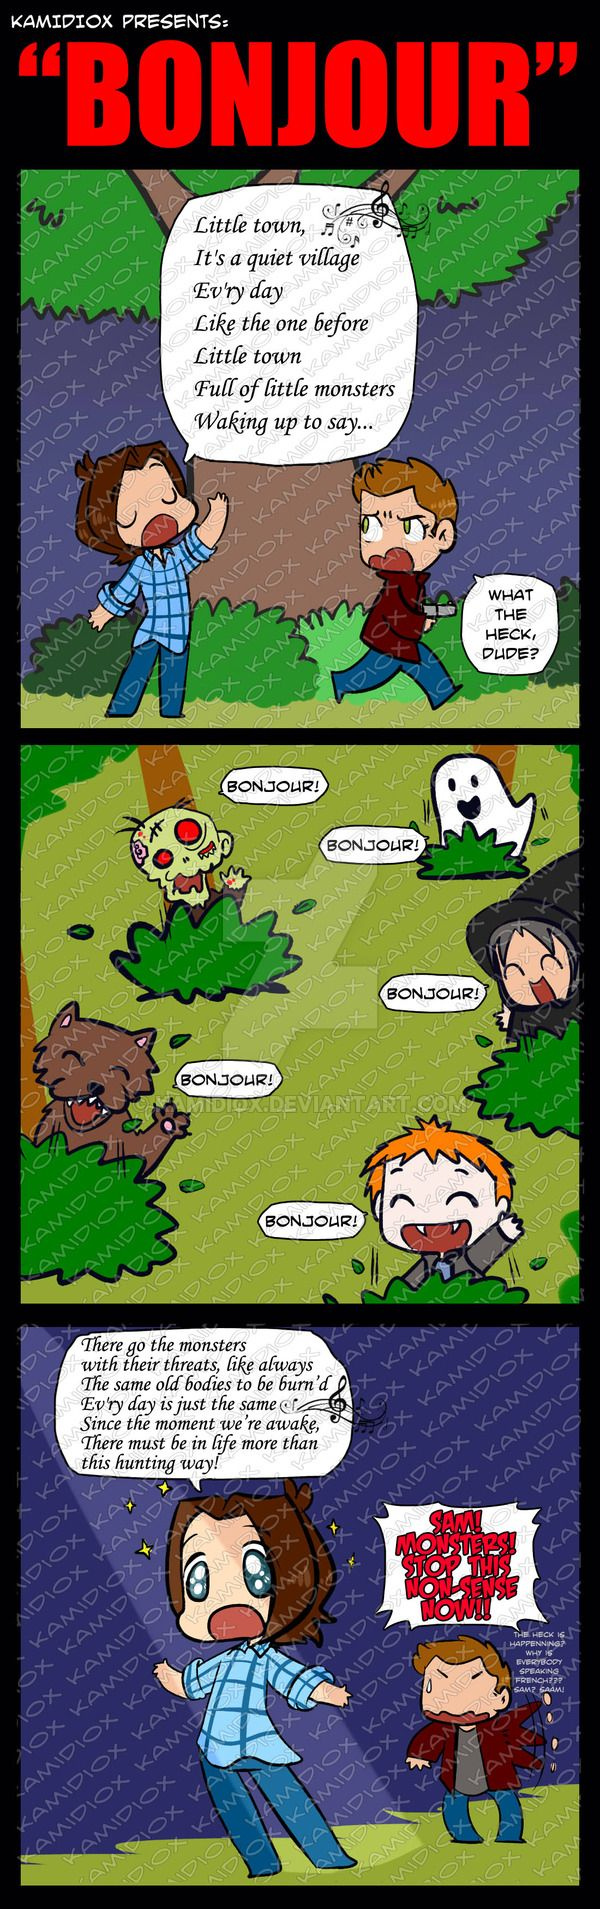 Bonjour by KamiDiox --- this is bloody fantastic.